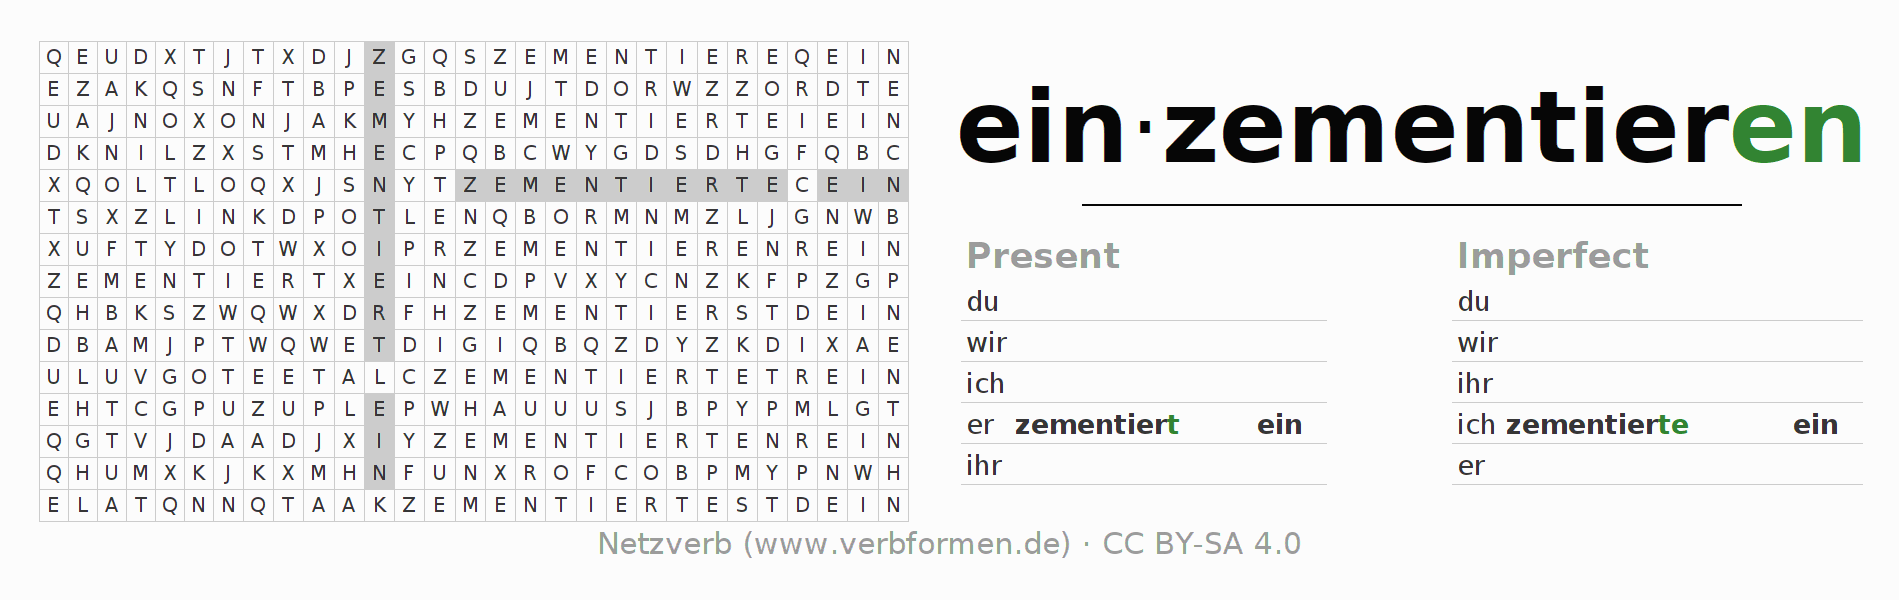 Word search puzzle for the conjugation of the verb einzementieren